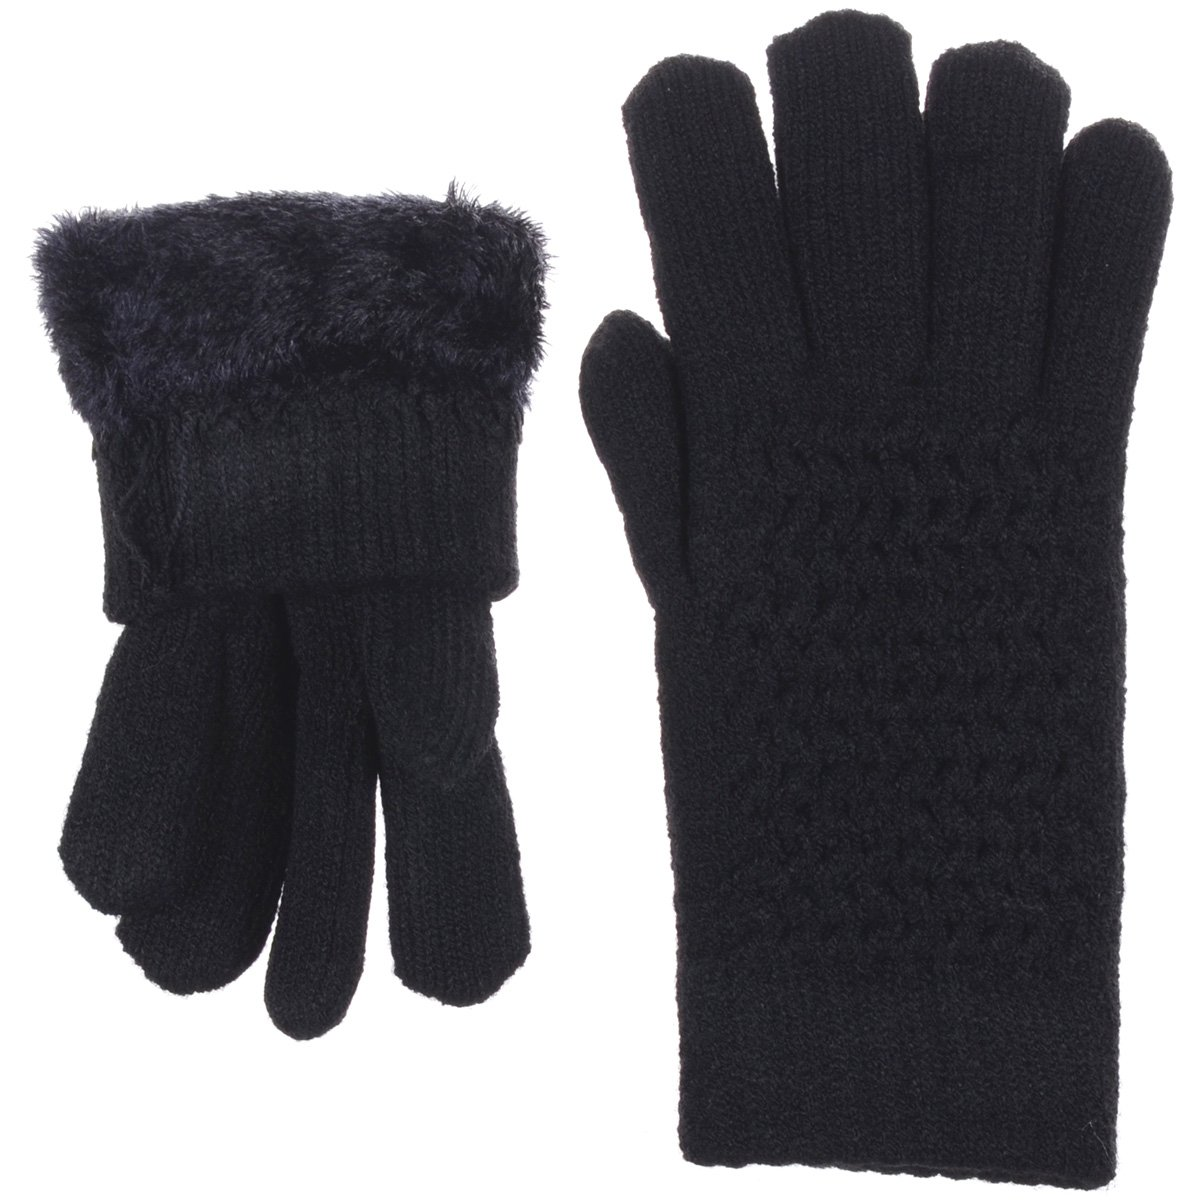 BYOS Womens Winter Ultra Warm Soft Plush Faux Fur Fleece Lined Knit Gloves W/Decorated Cuff (Black Net) by Be Your Own Style (Image #3)